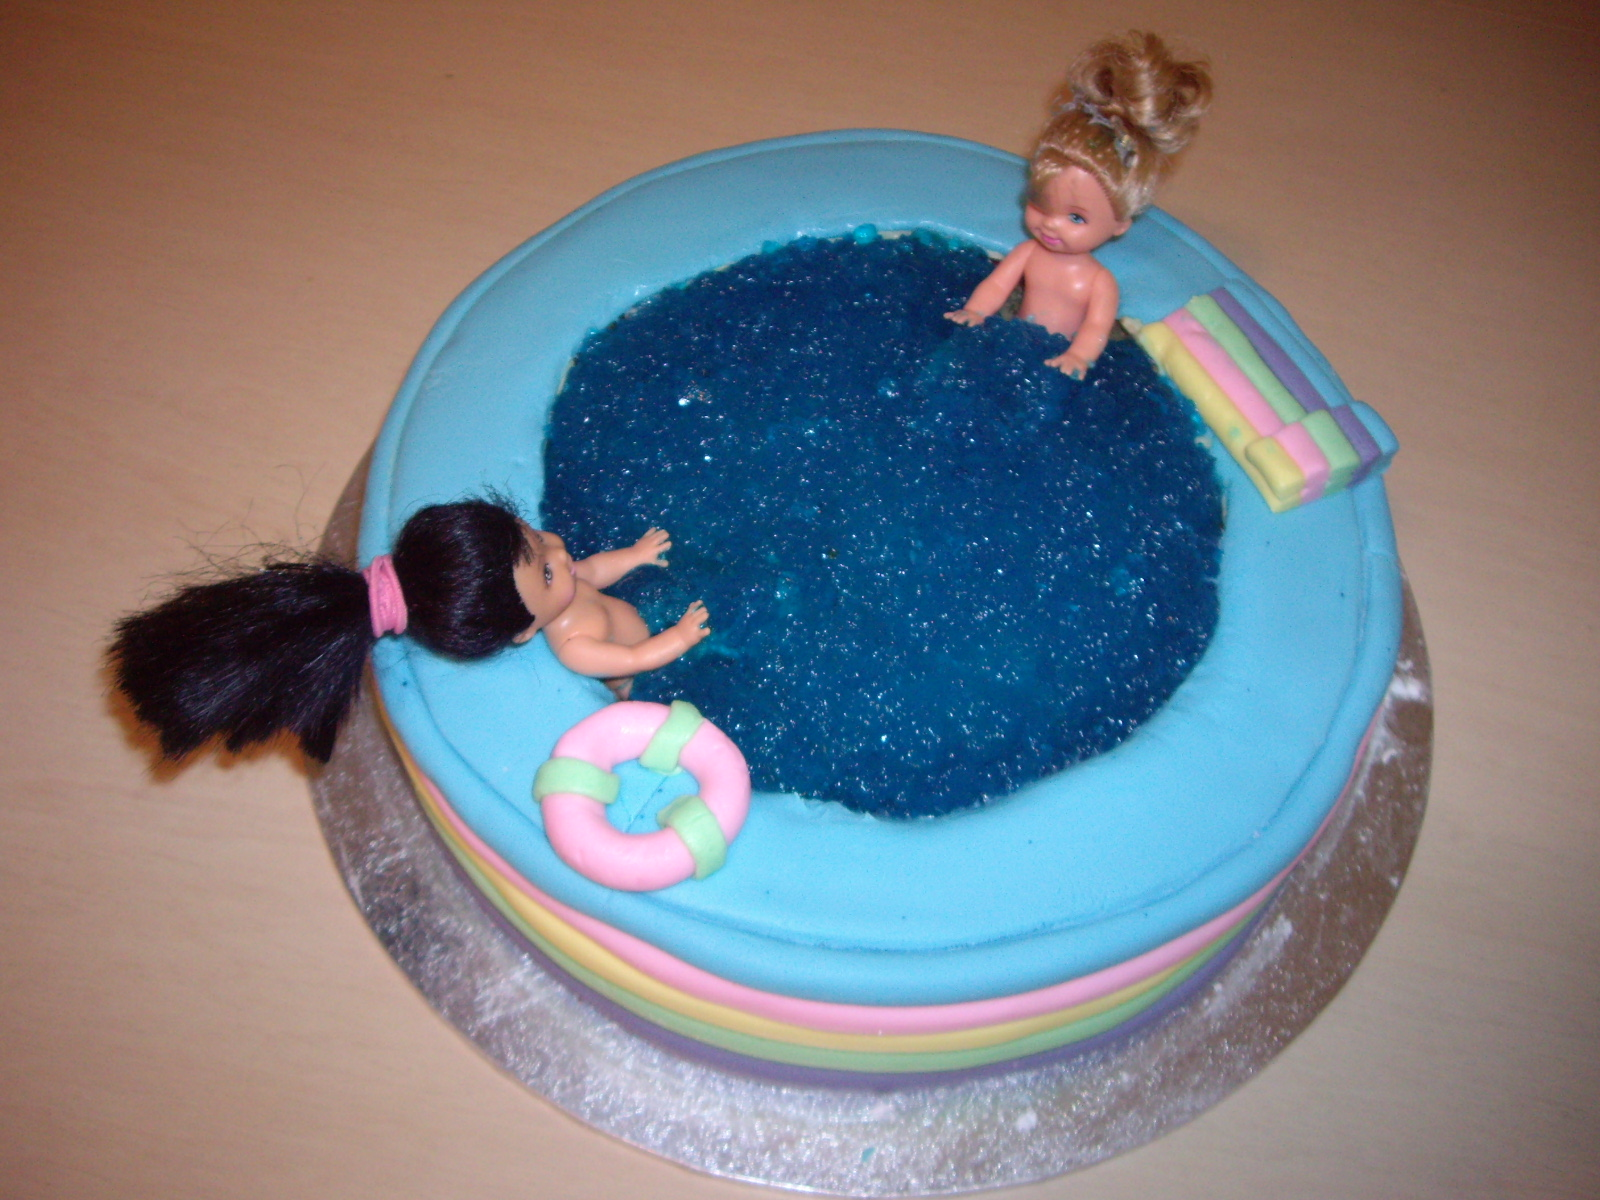 Pool Party Cake 2